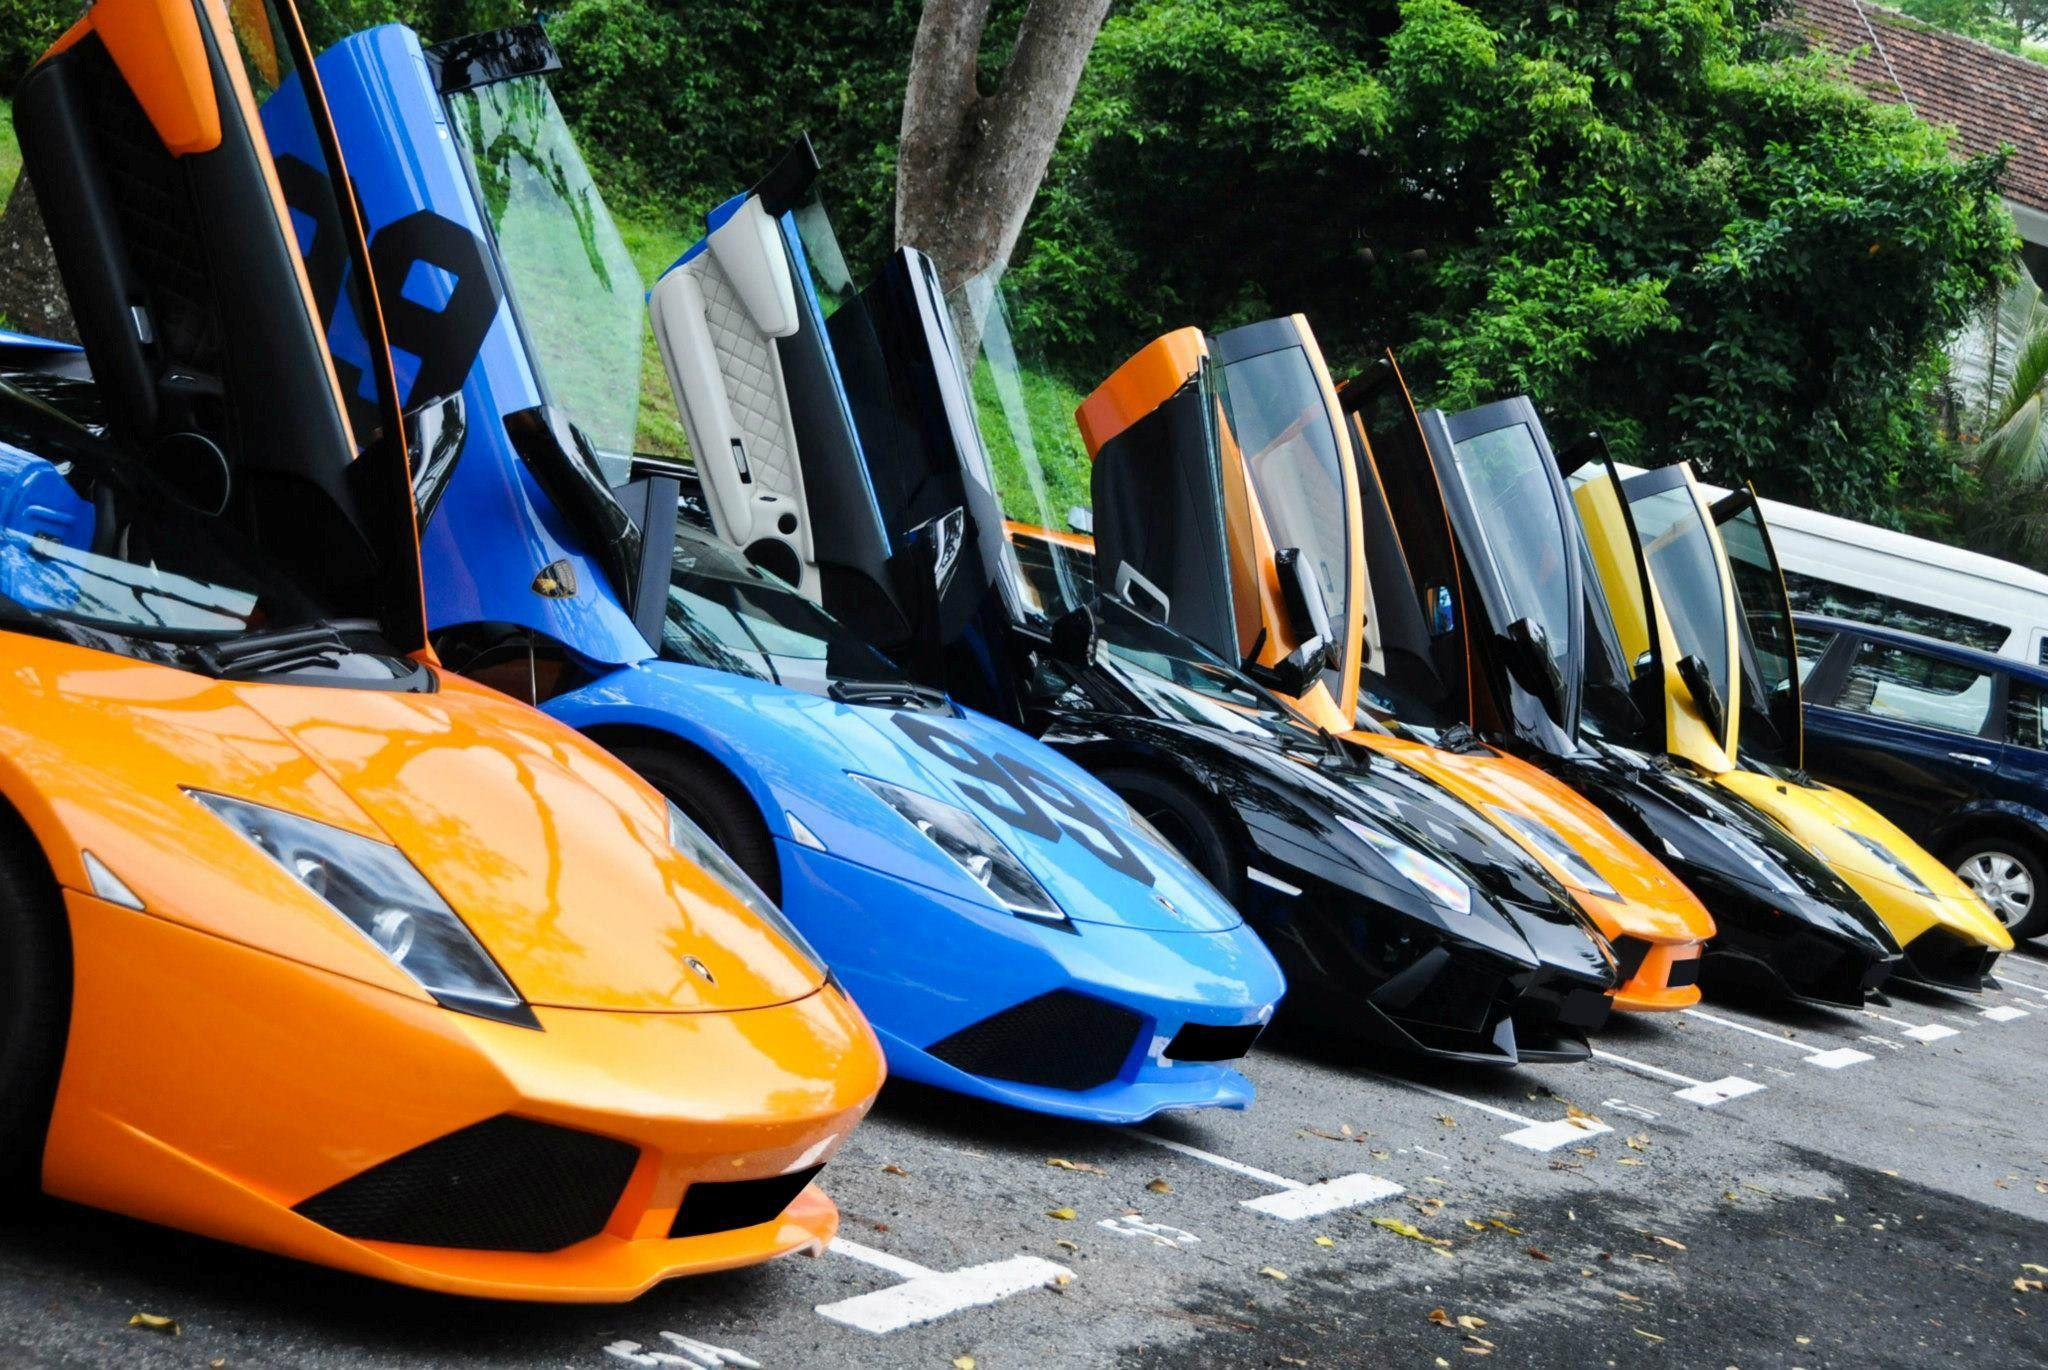 All Lamborghini Doors Open In Up Side In A Row Hd Best Images Bake